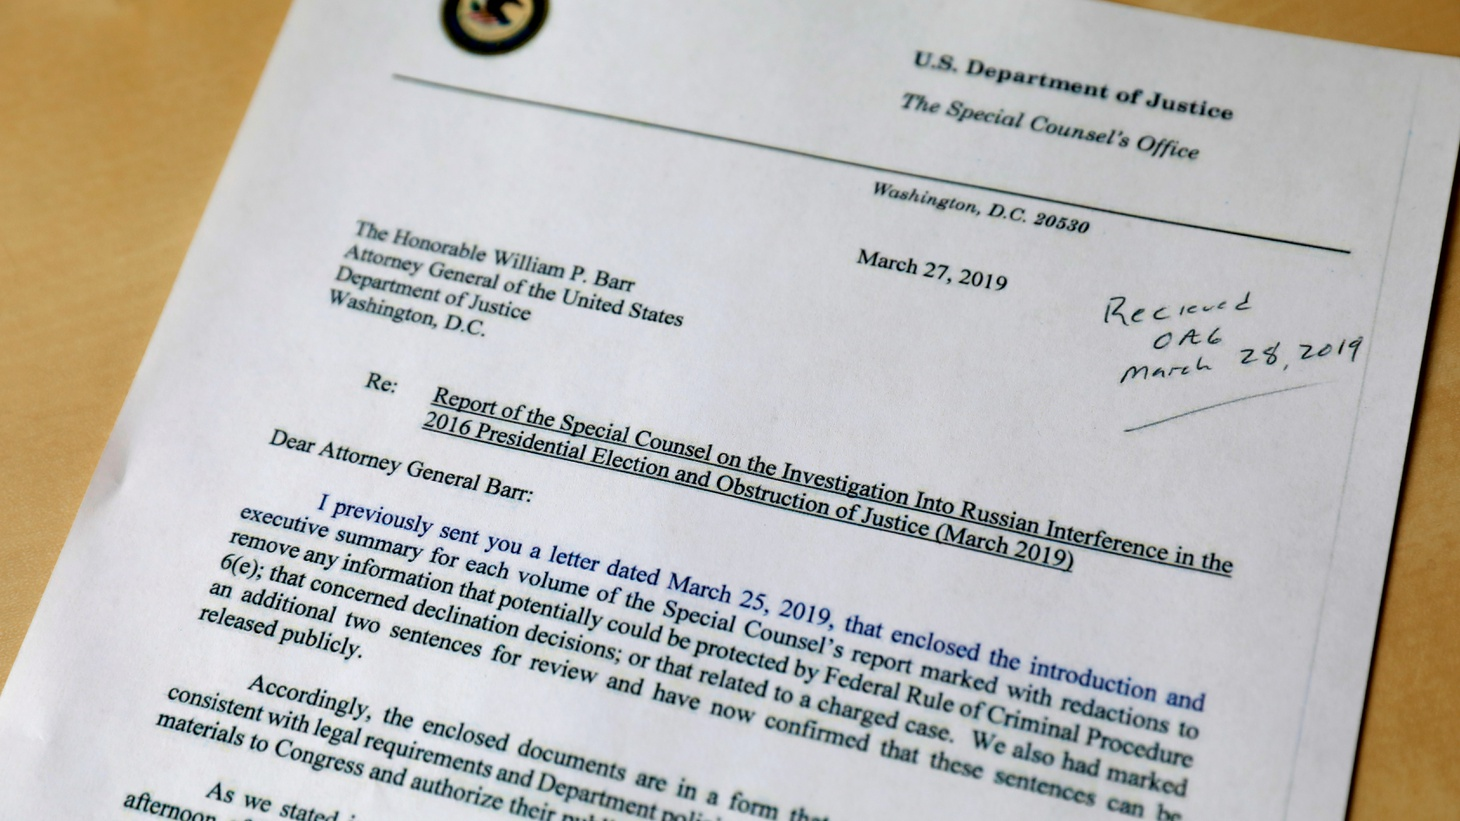 A copy of a letter sent by Special Counsel Robert Mueller on March 27, 2019, to U.S. Attorney General William Barr regarding the Report of the Special Counsel on the Investigation Into Russian Interference in the 2016 Presidential Election and Obstruction of Justice, is seen in New York, U.S., May 1, 2019.